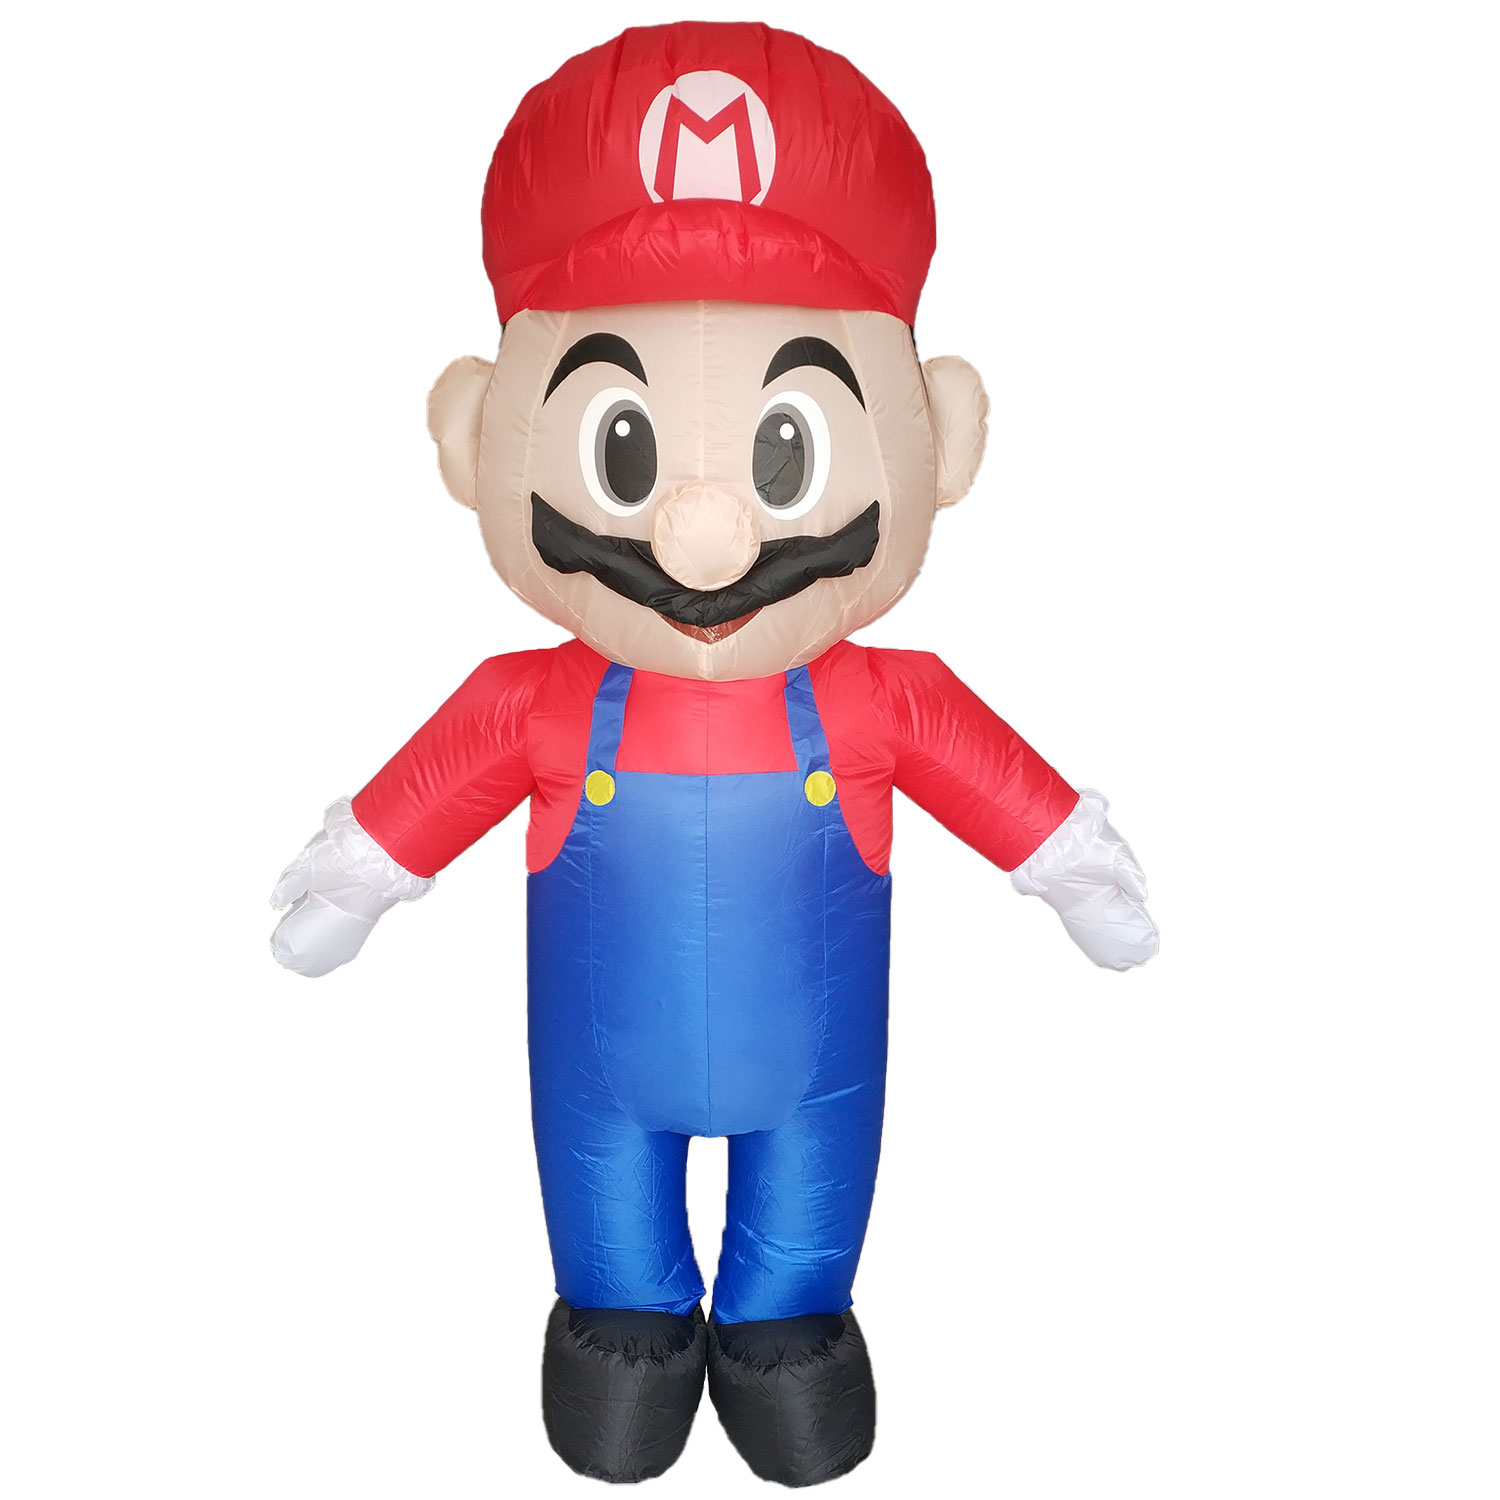 Inflatable Mario Costume Super Mario Fancy Dress For Adults Halloweeen Party  Carnival Cosplay Outfit Mascot Blow Up Suit